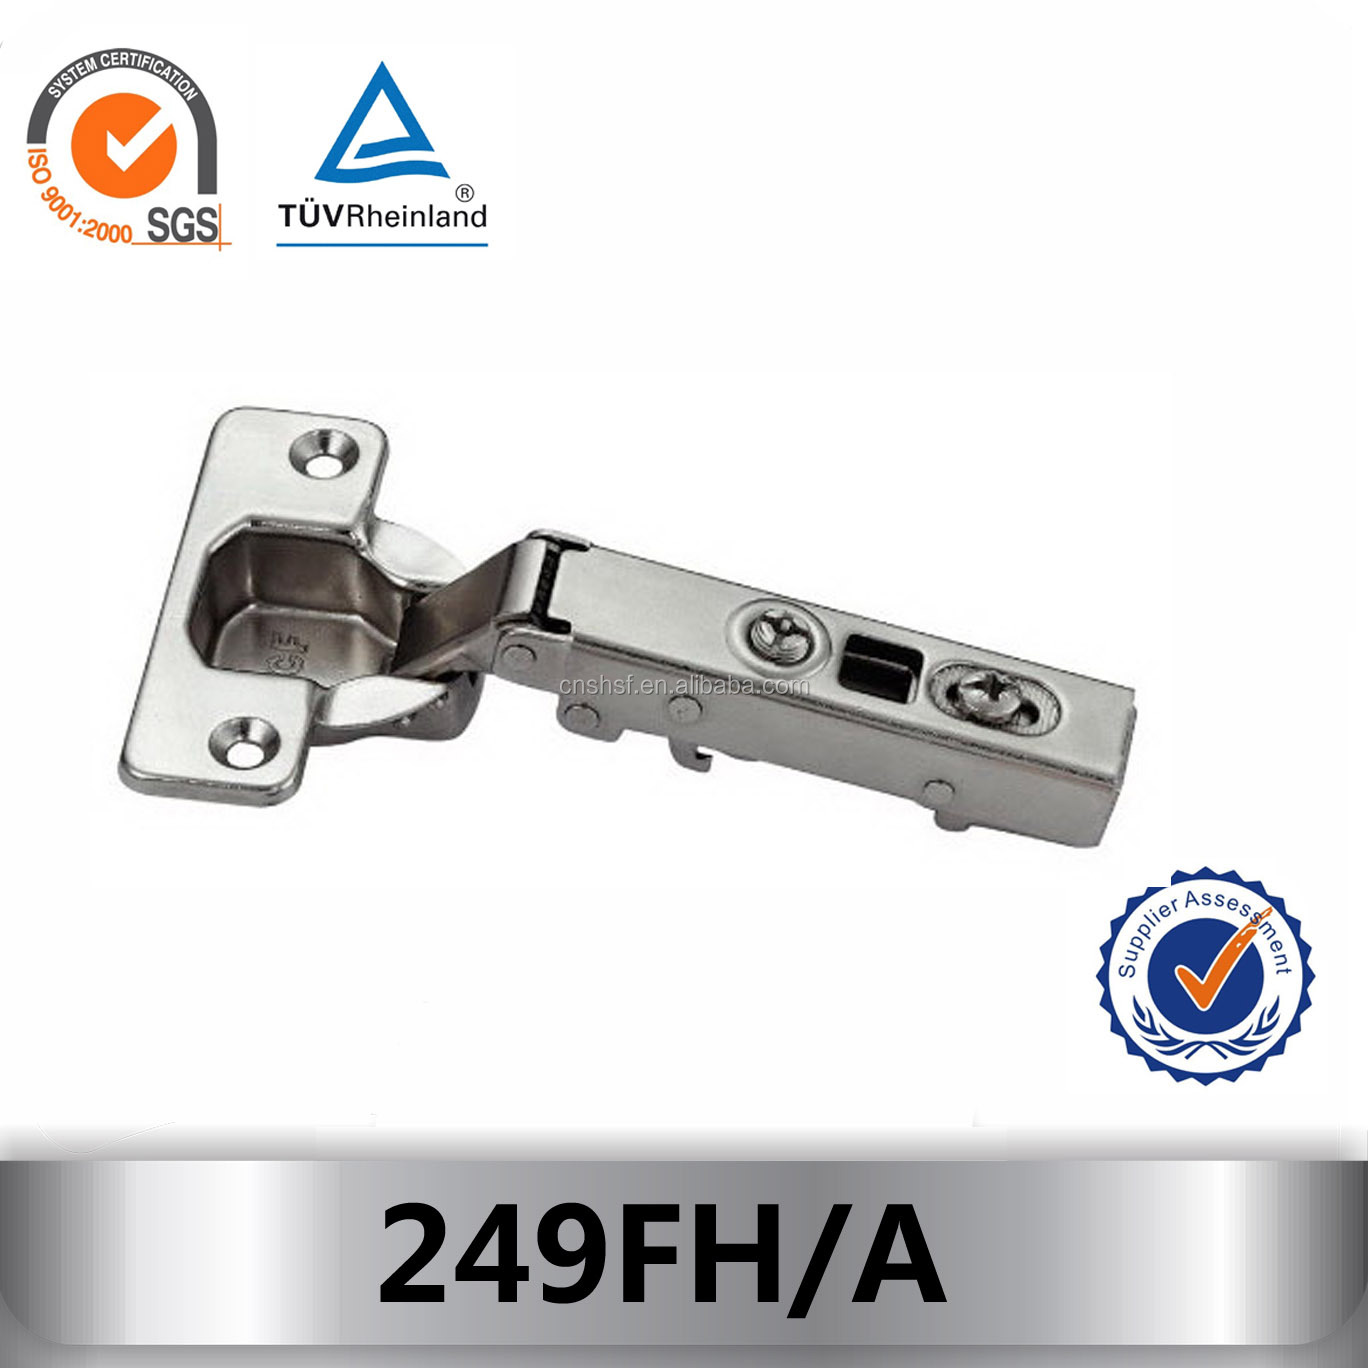 Anti Slam Door Hinges, Anti Slam Door Hinges Suppliers and ...